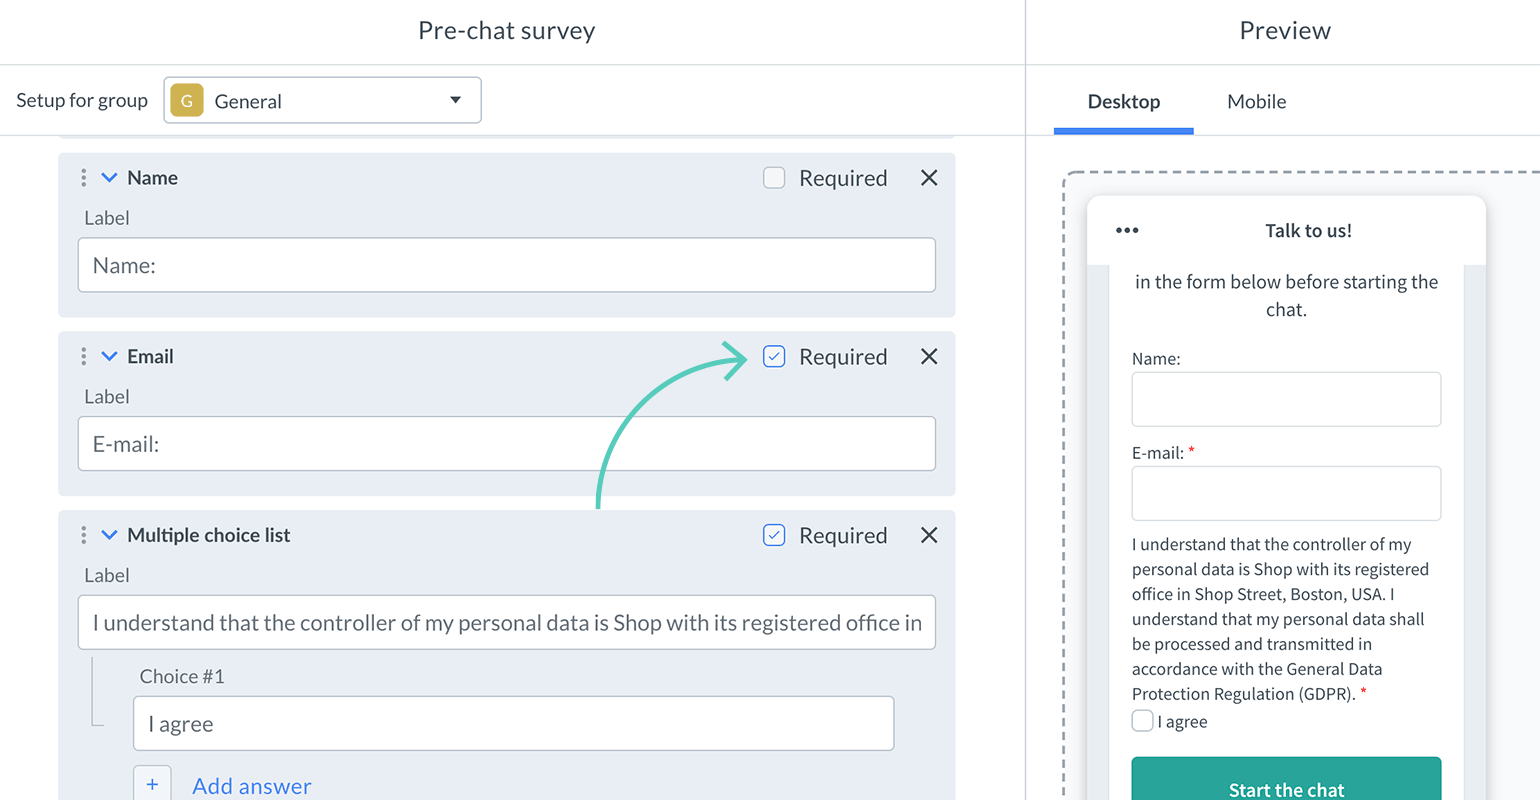 How to make a field required in pre-chat survey